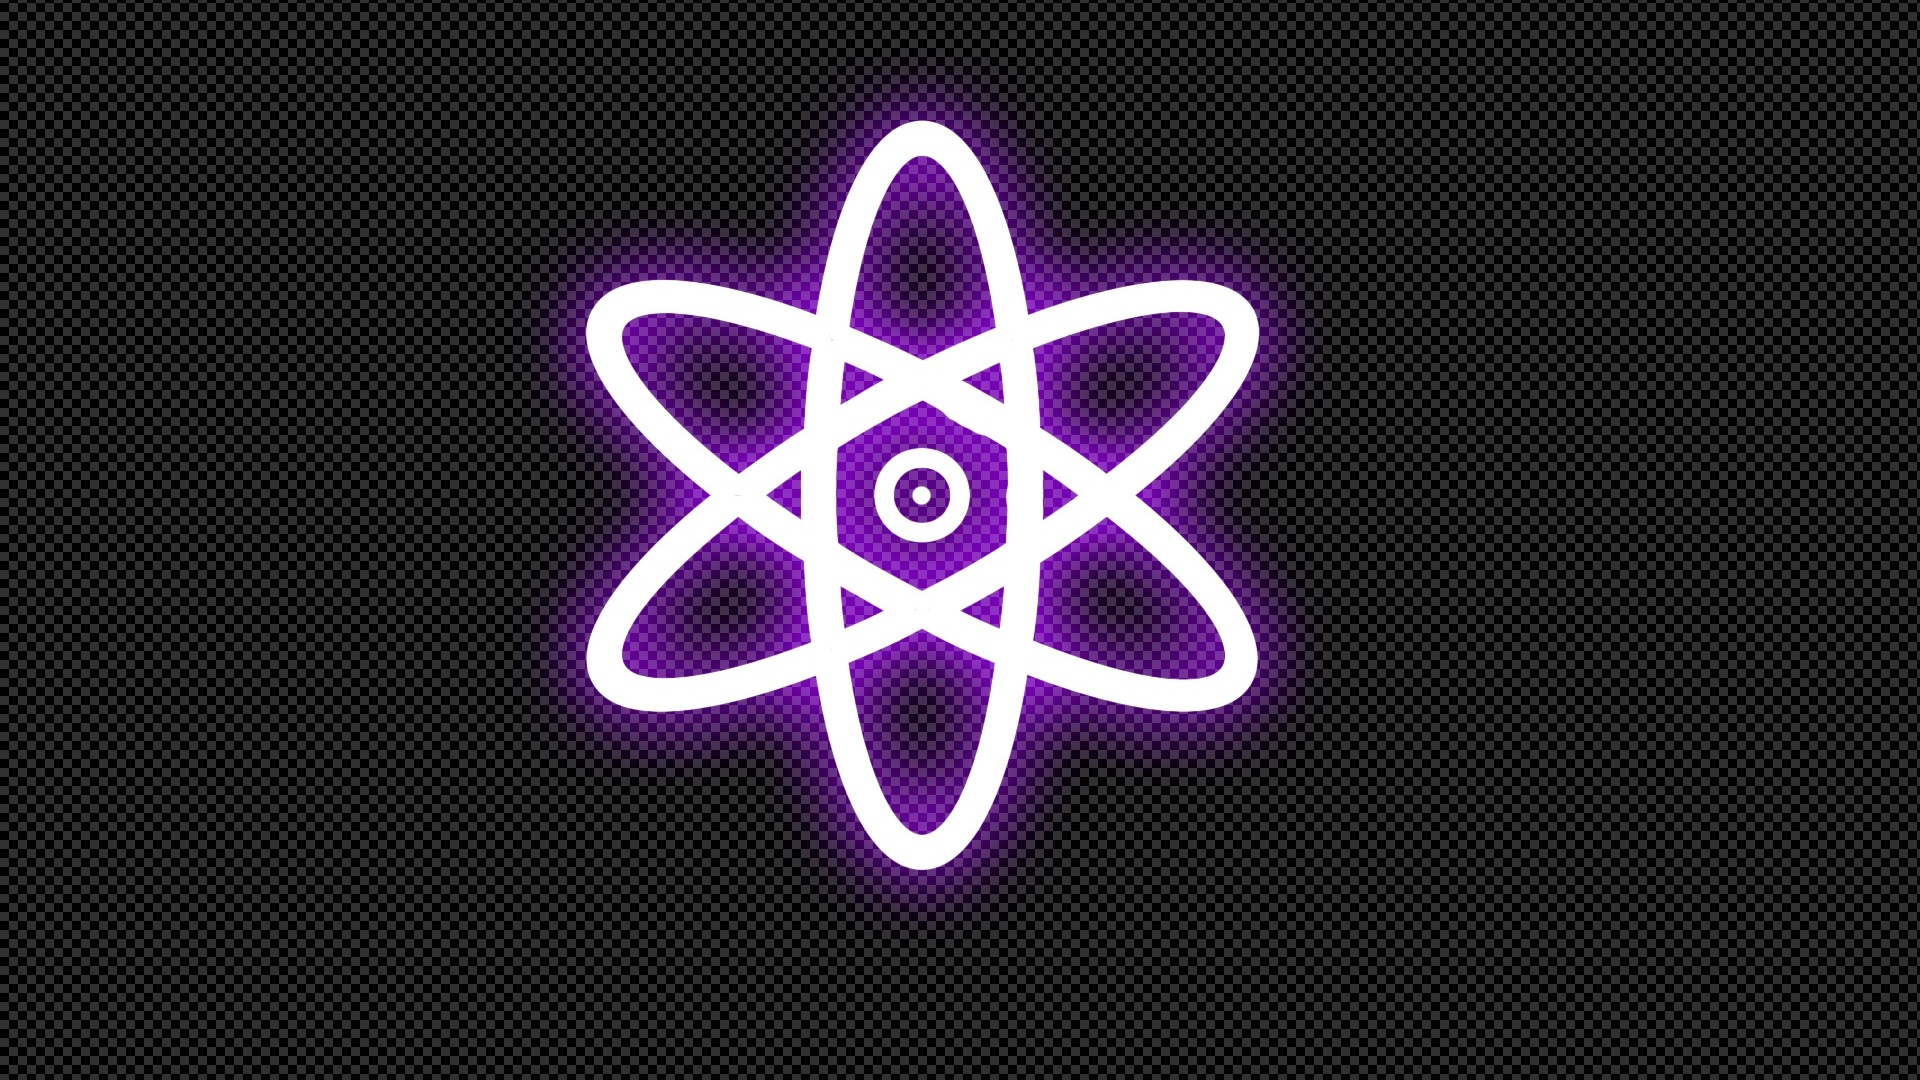 Wide HDQ Atom Wallpapers, Nice Backgrounds | B.SCB